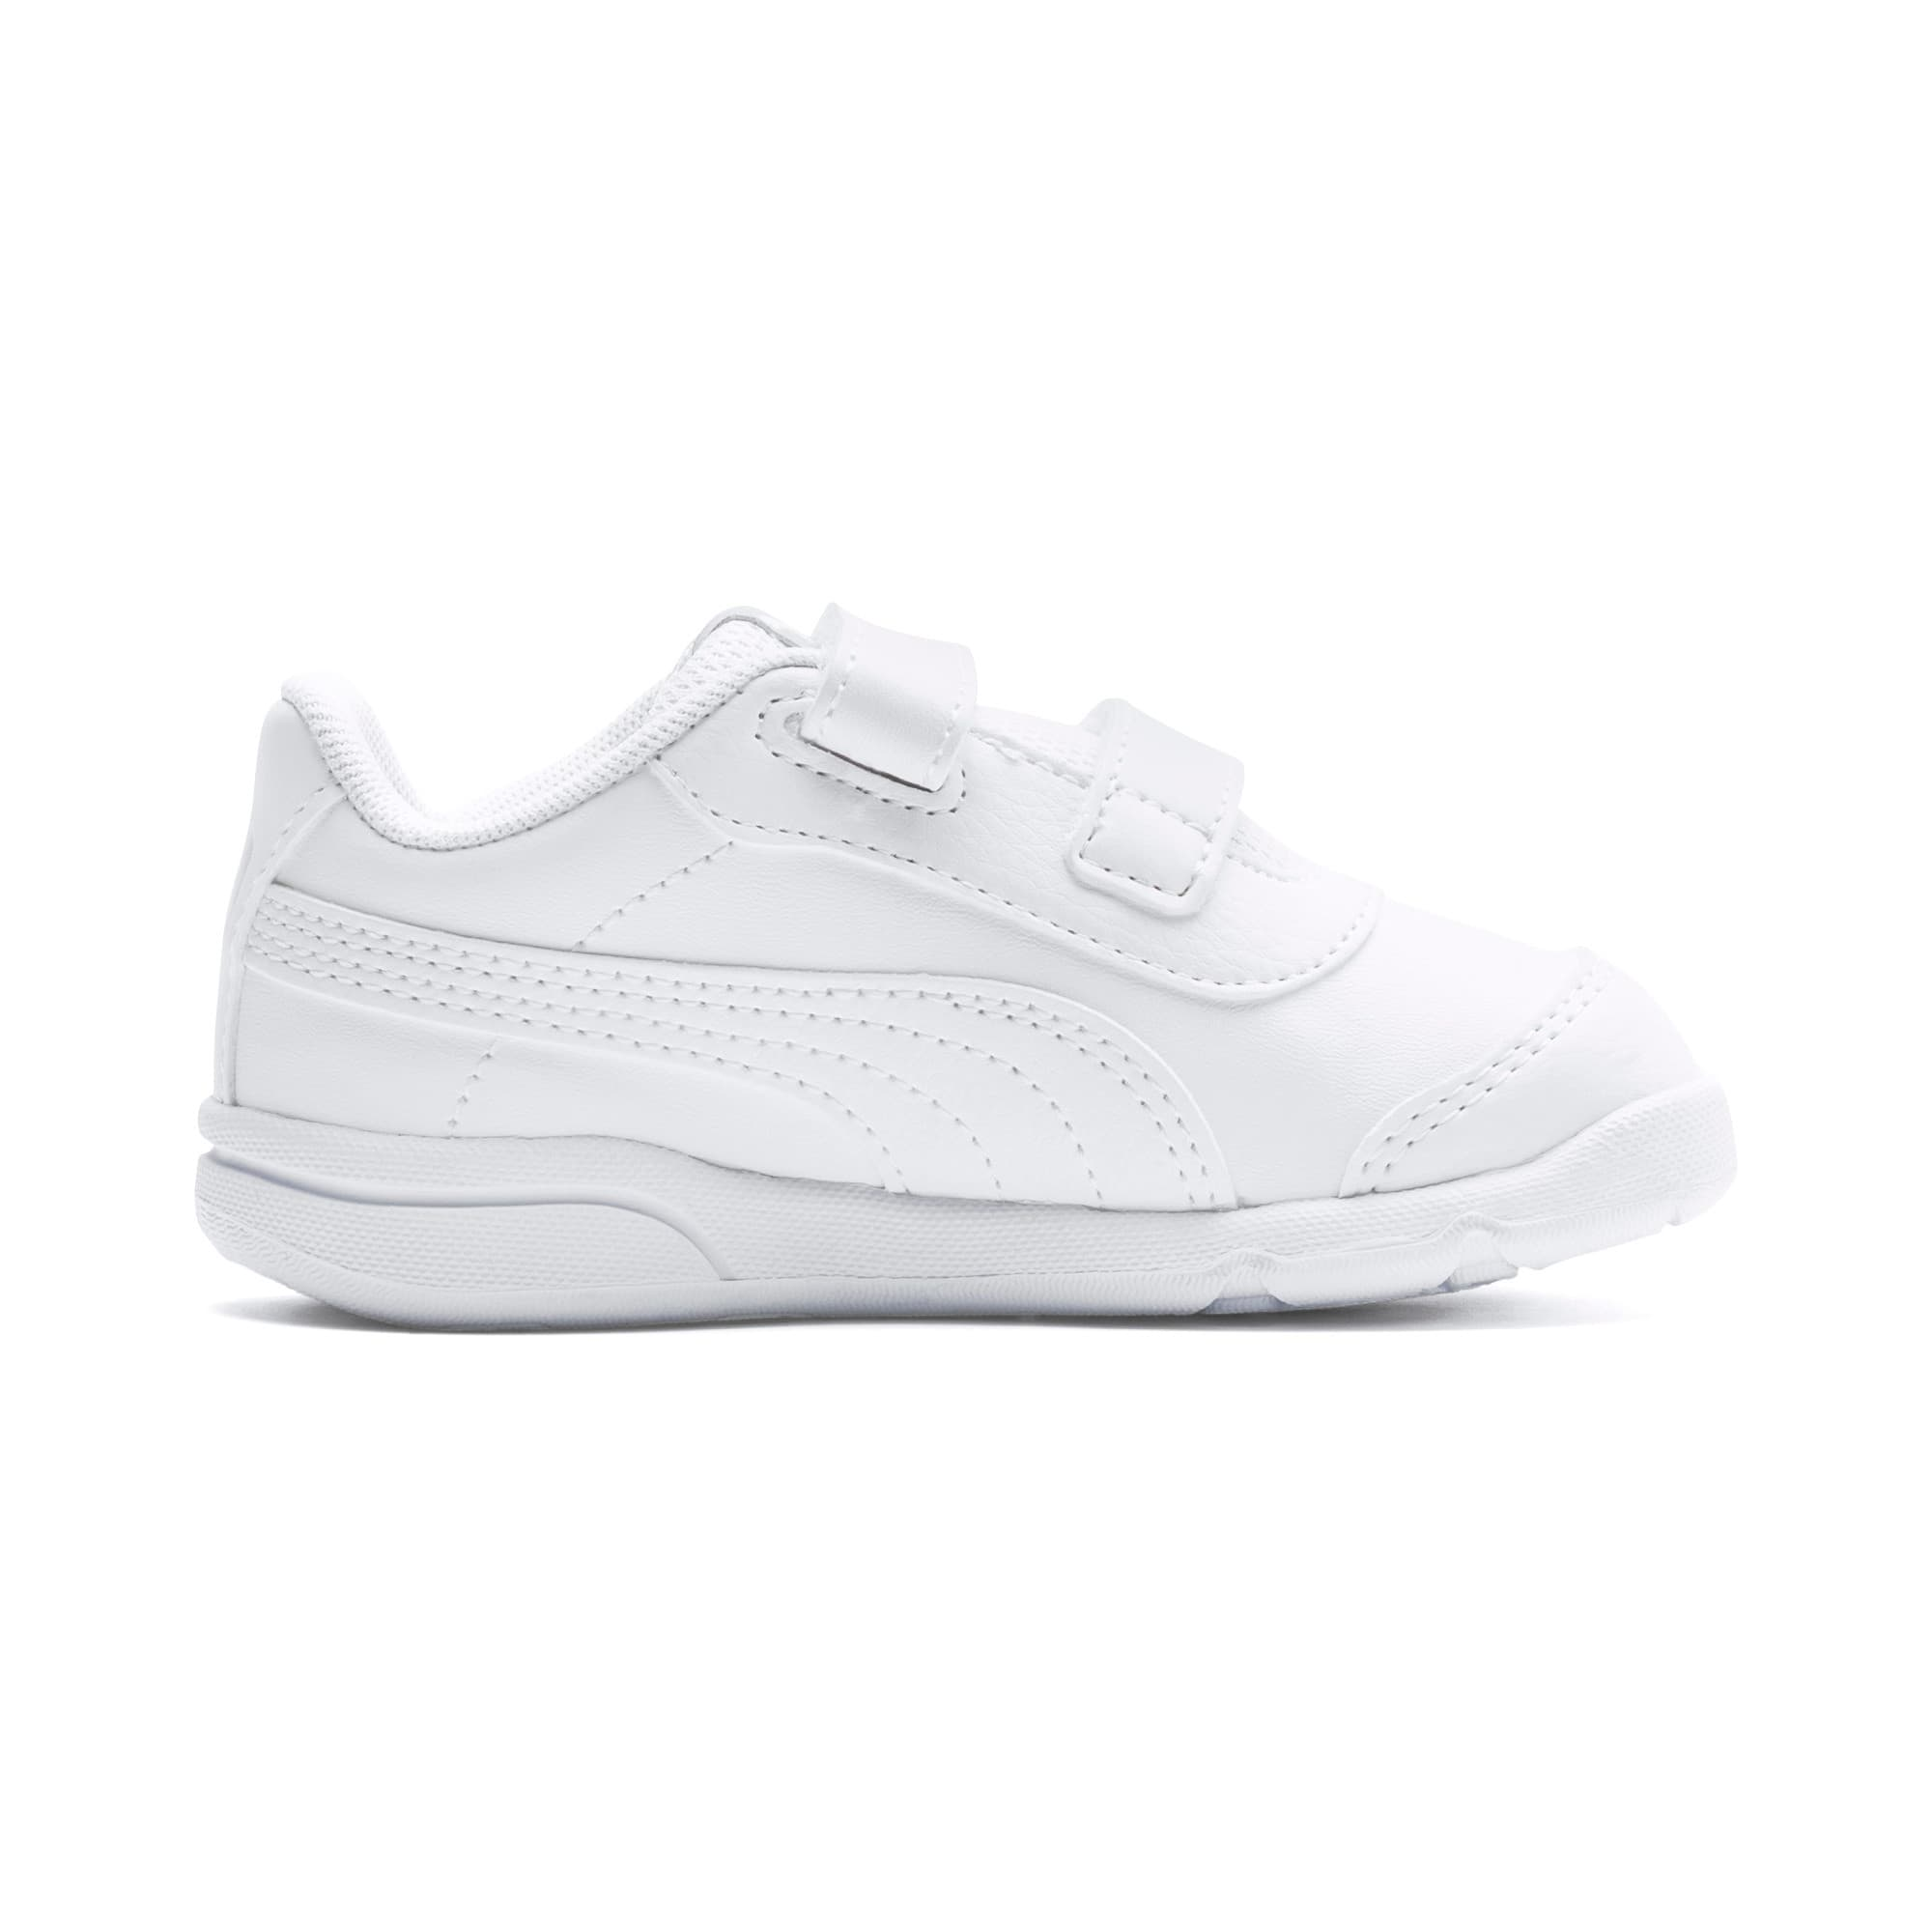 Thumbnail 5 of Stepfleex 2 SL VE V Babies Sneaker, Puma White-Puma White, medium